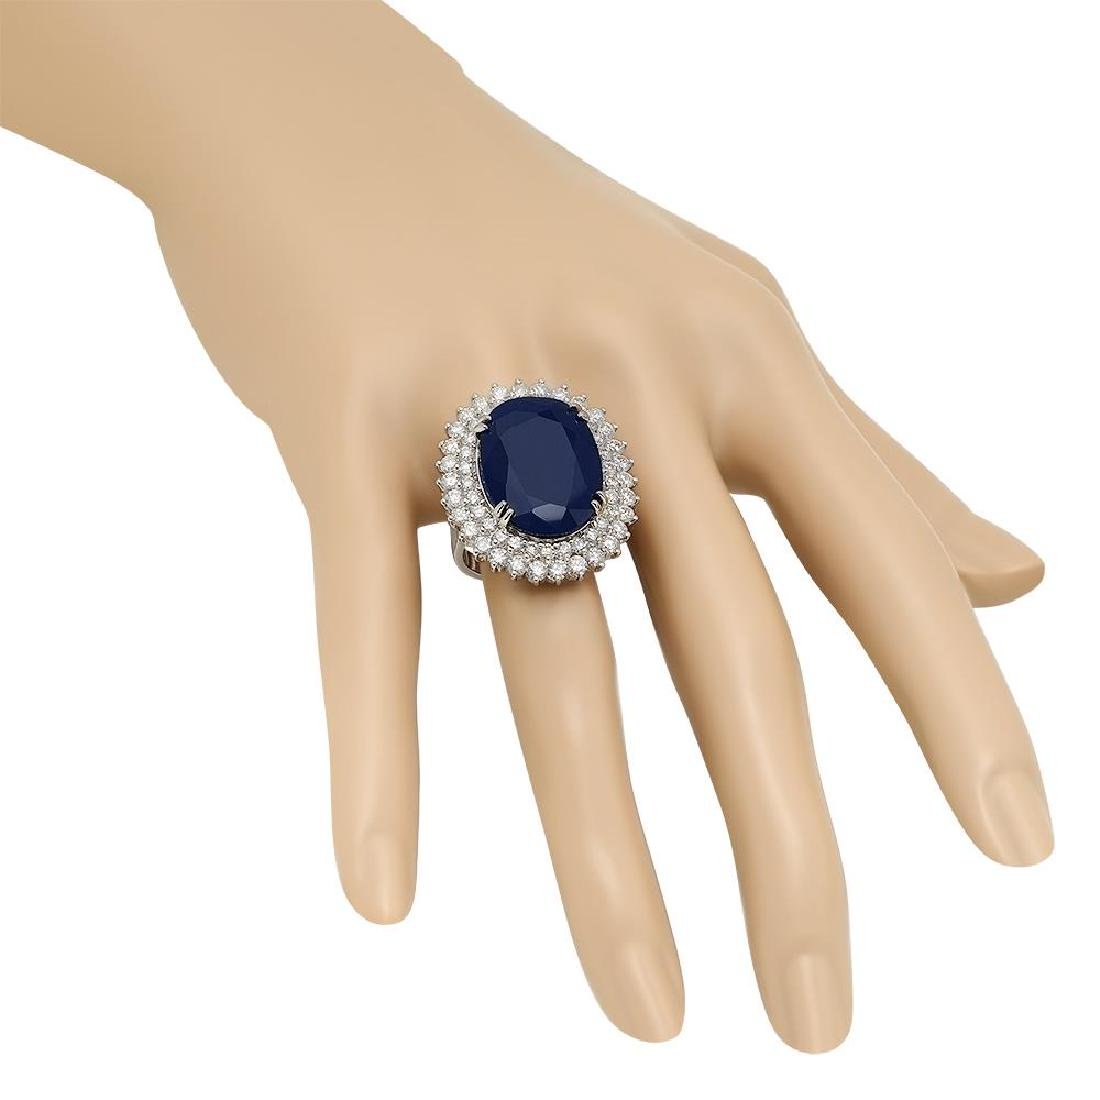 14K Gold 25.57ct Sapphire 3.39ct Diamond Ring - 3